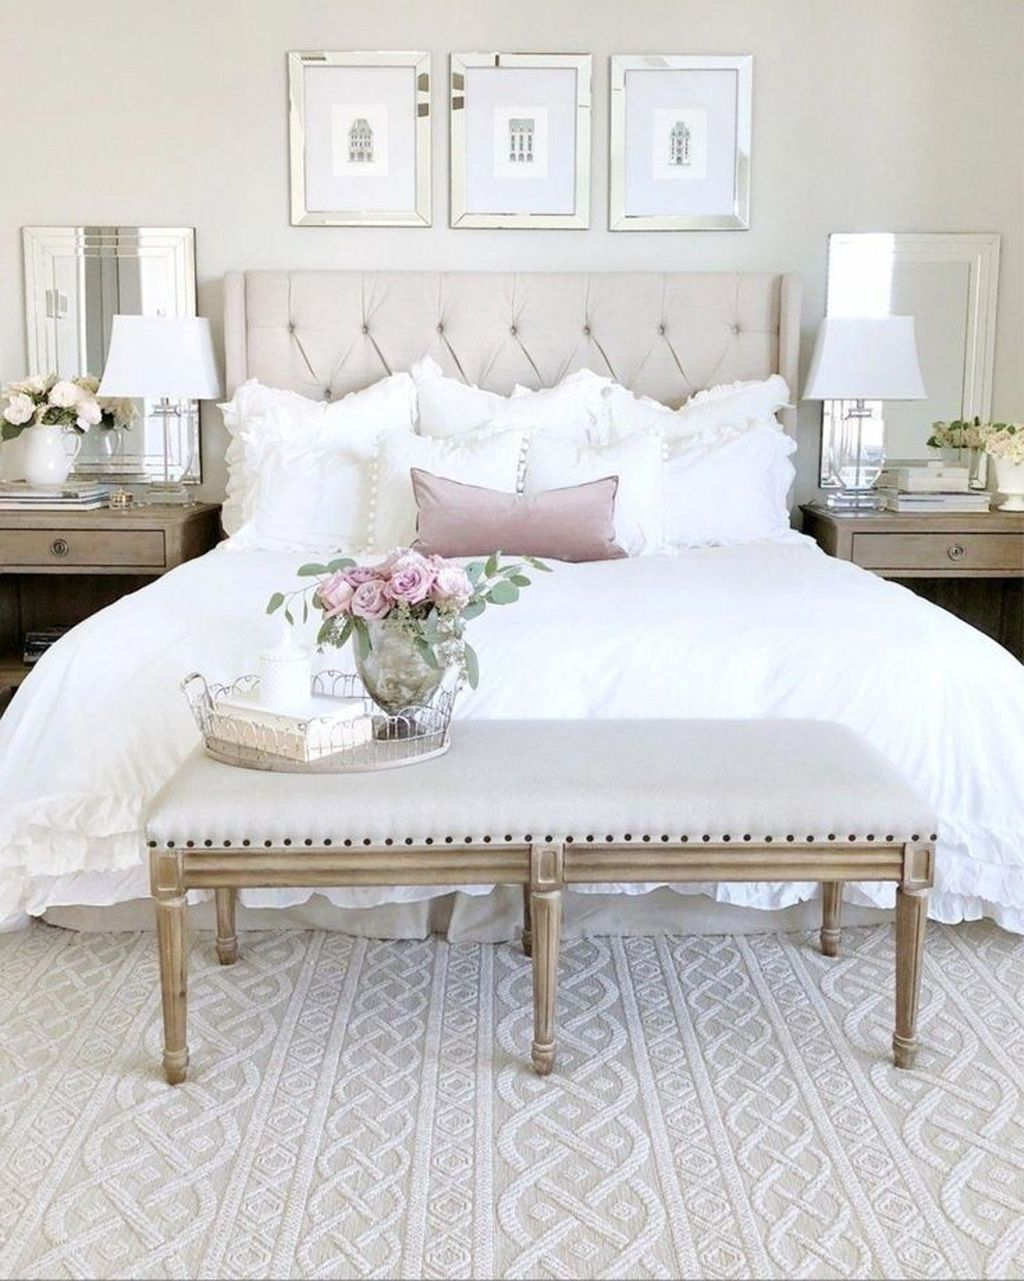 Stunning French Bedroom Decor Ideas That Will Inspire You 28